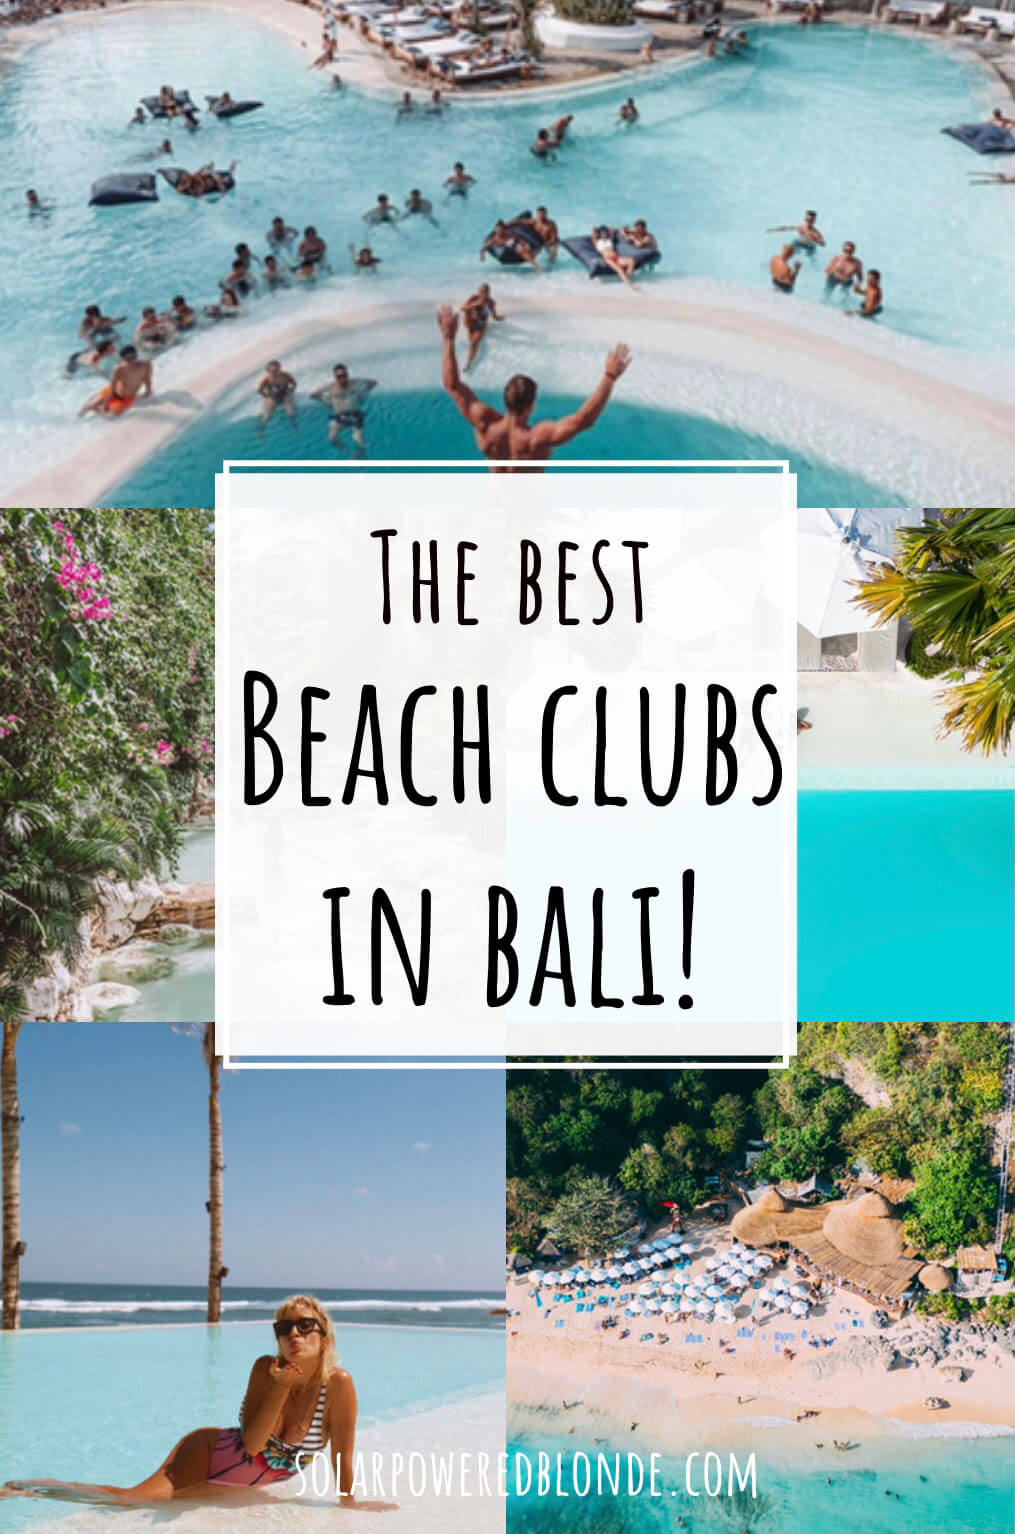 The best beach clubs in bali pinterest graphic